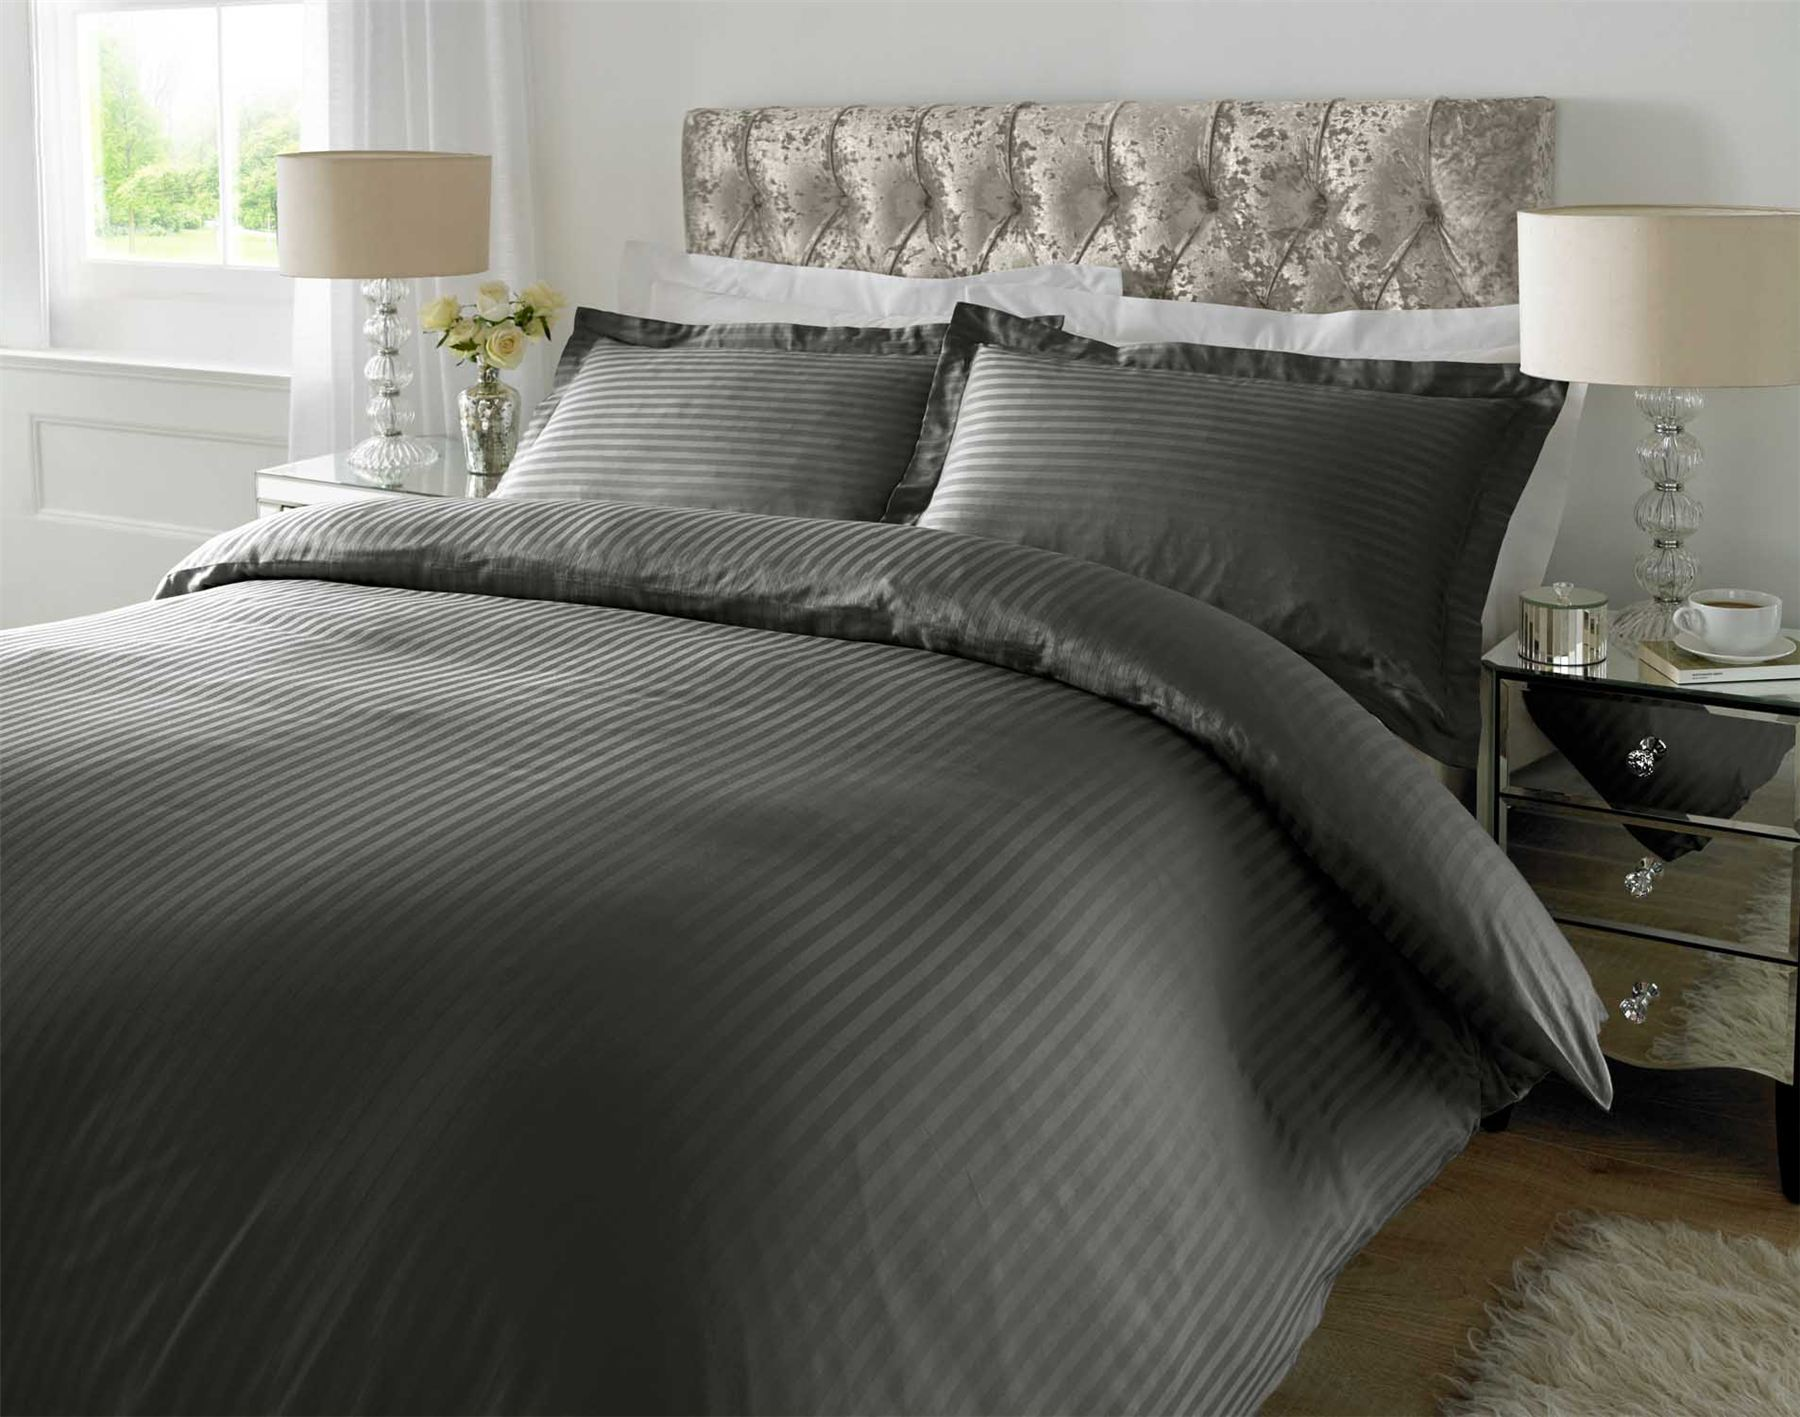 King Size Duvet Covers | Navy Duvet Cover | Flannel Duvet Cover King Size